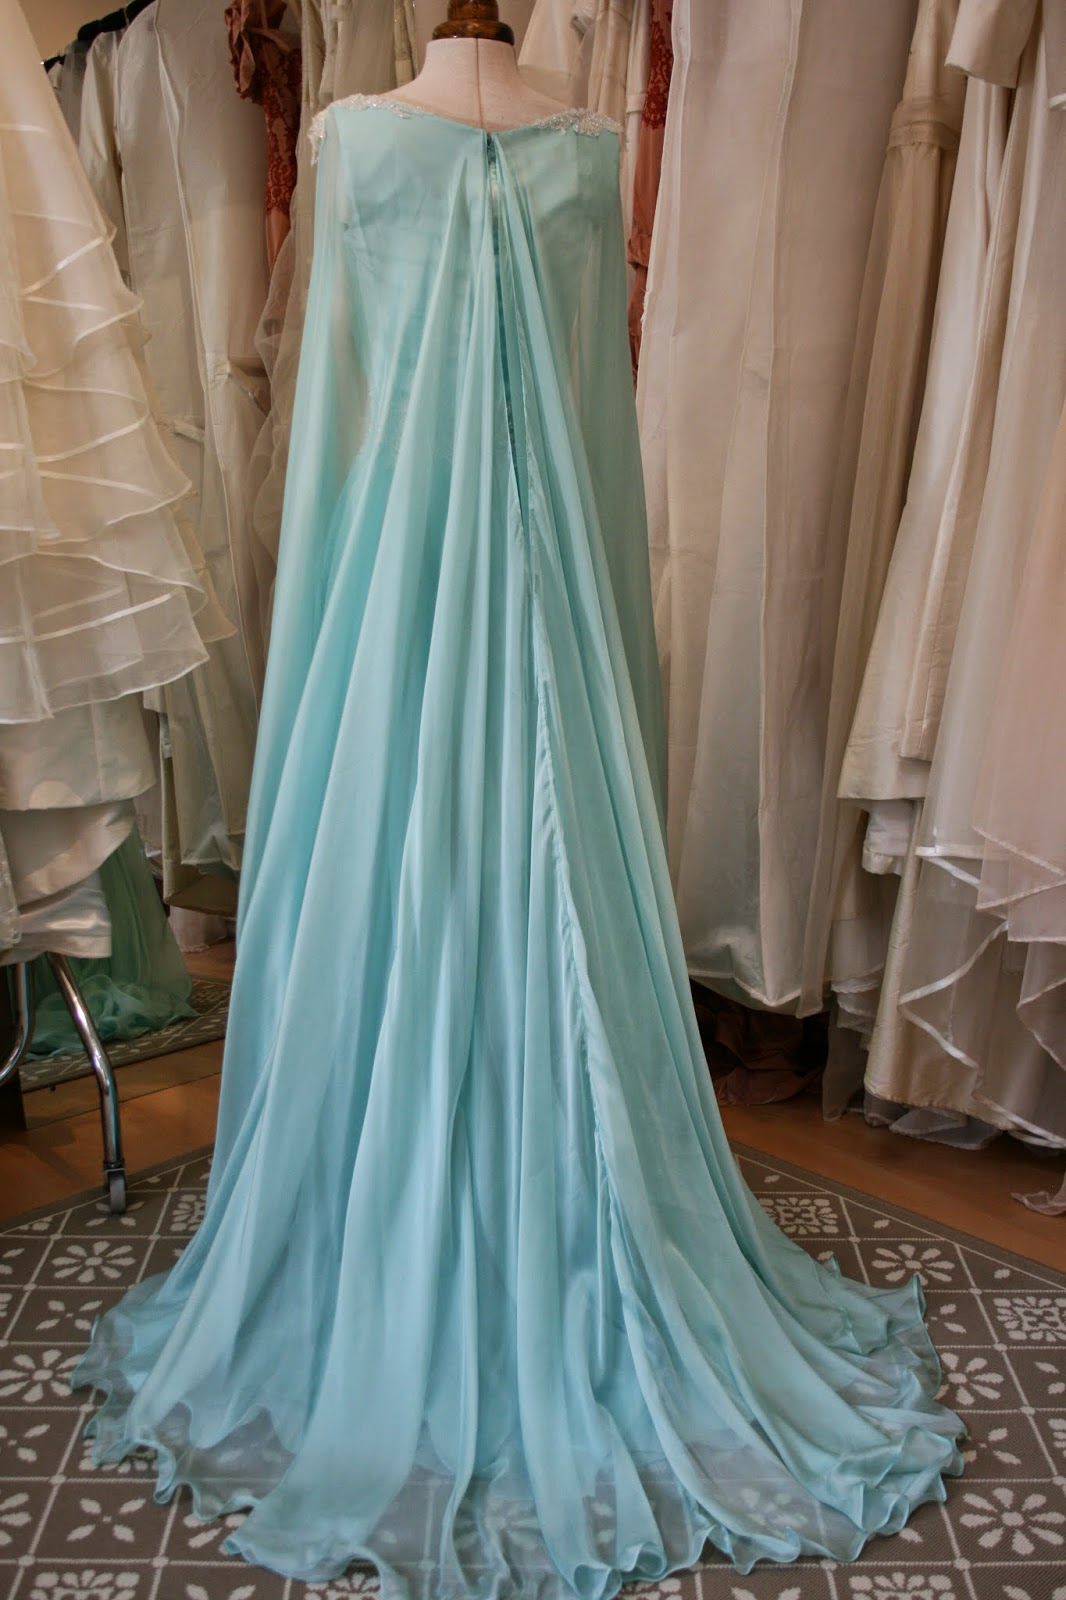 Unusual, icey, Snow-Queen-ish Winter Wedding Dress!